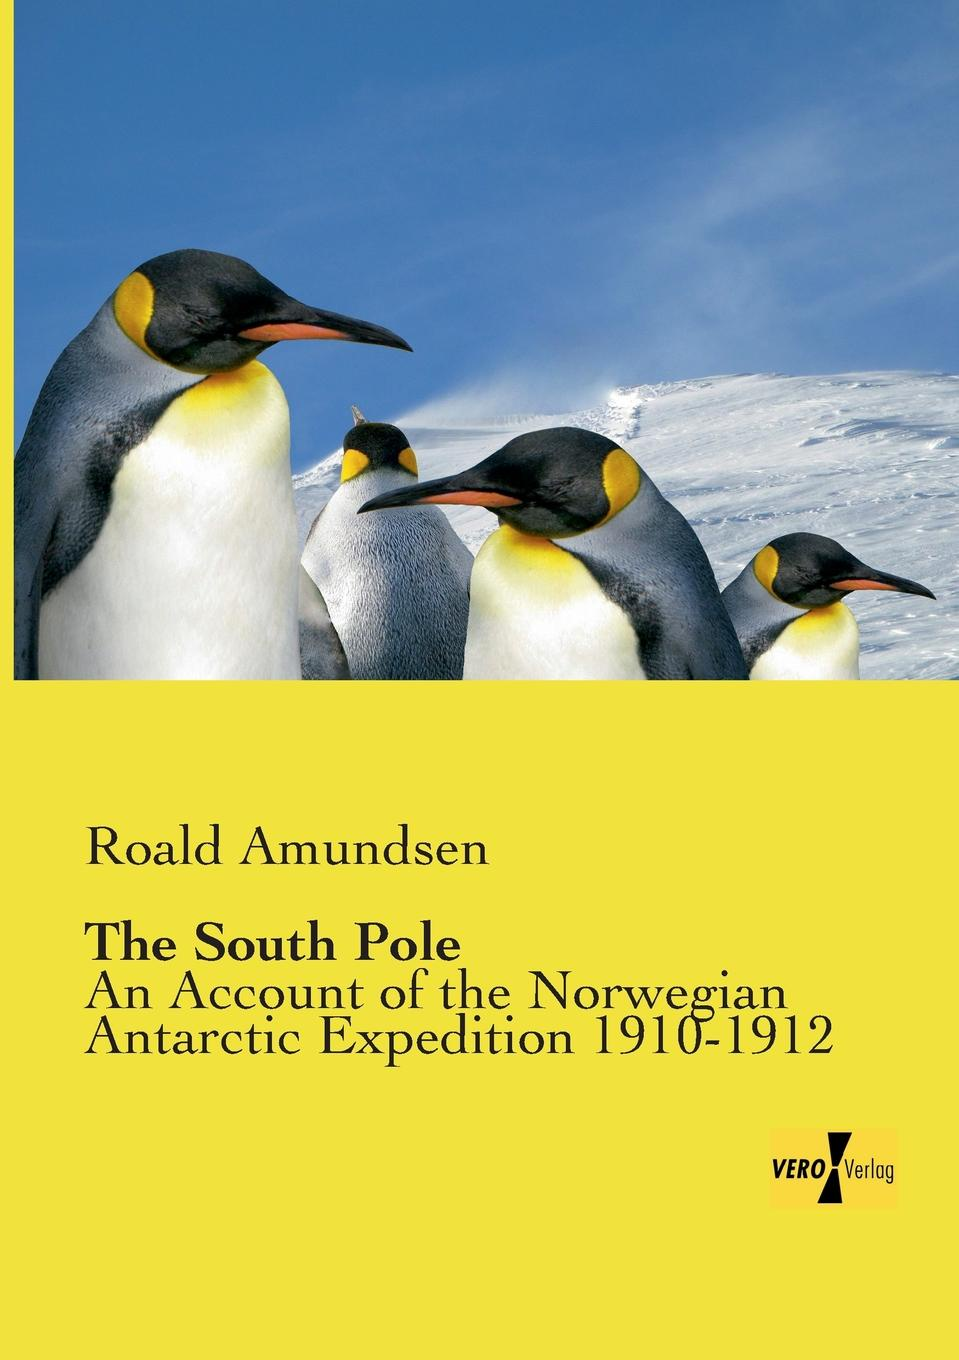 Roald Amundsen The South Pole robert falcon scott last expedition volume 2